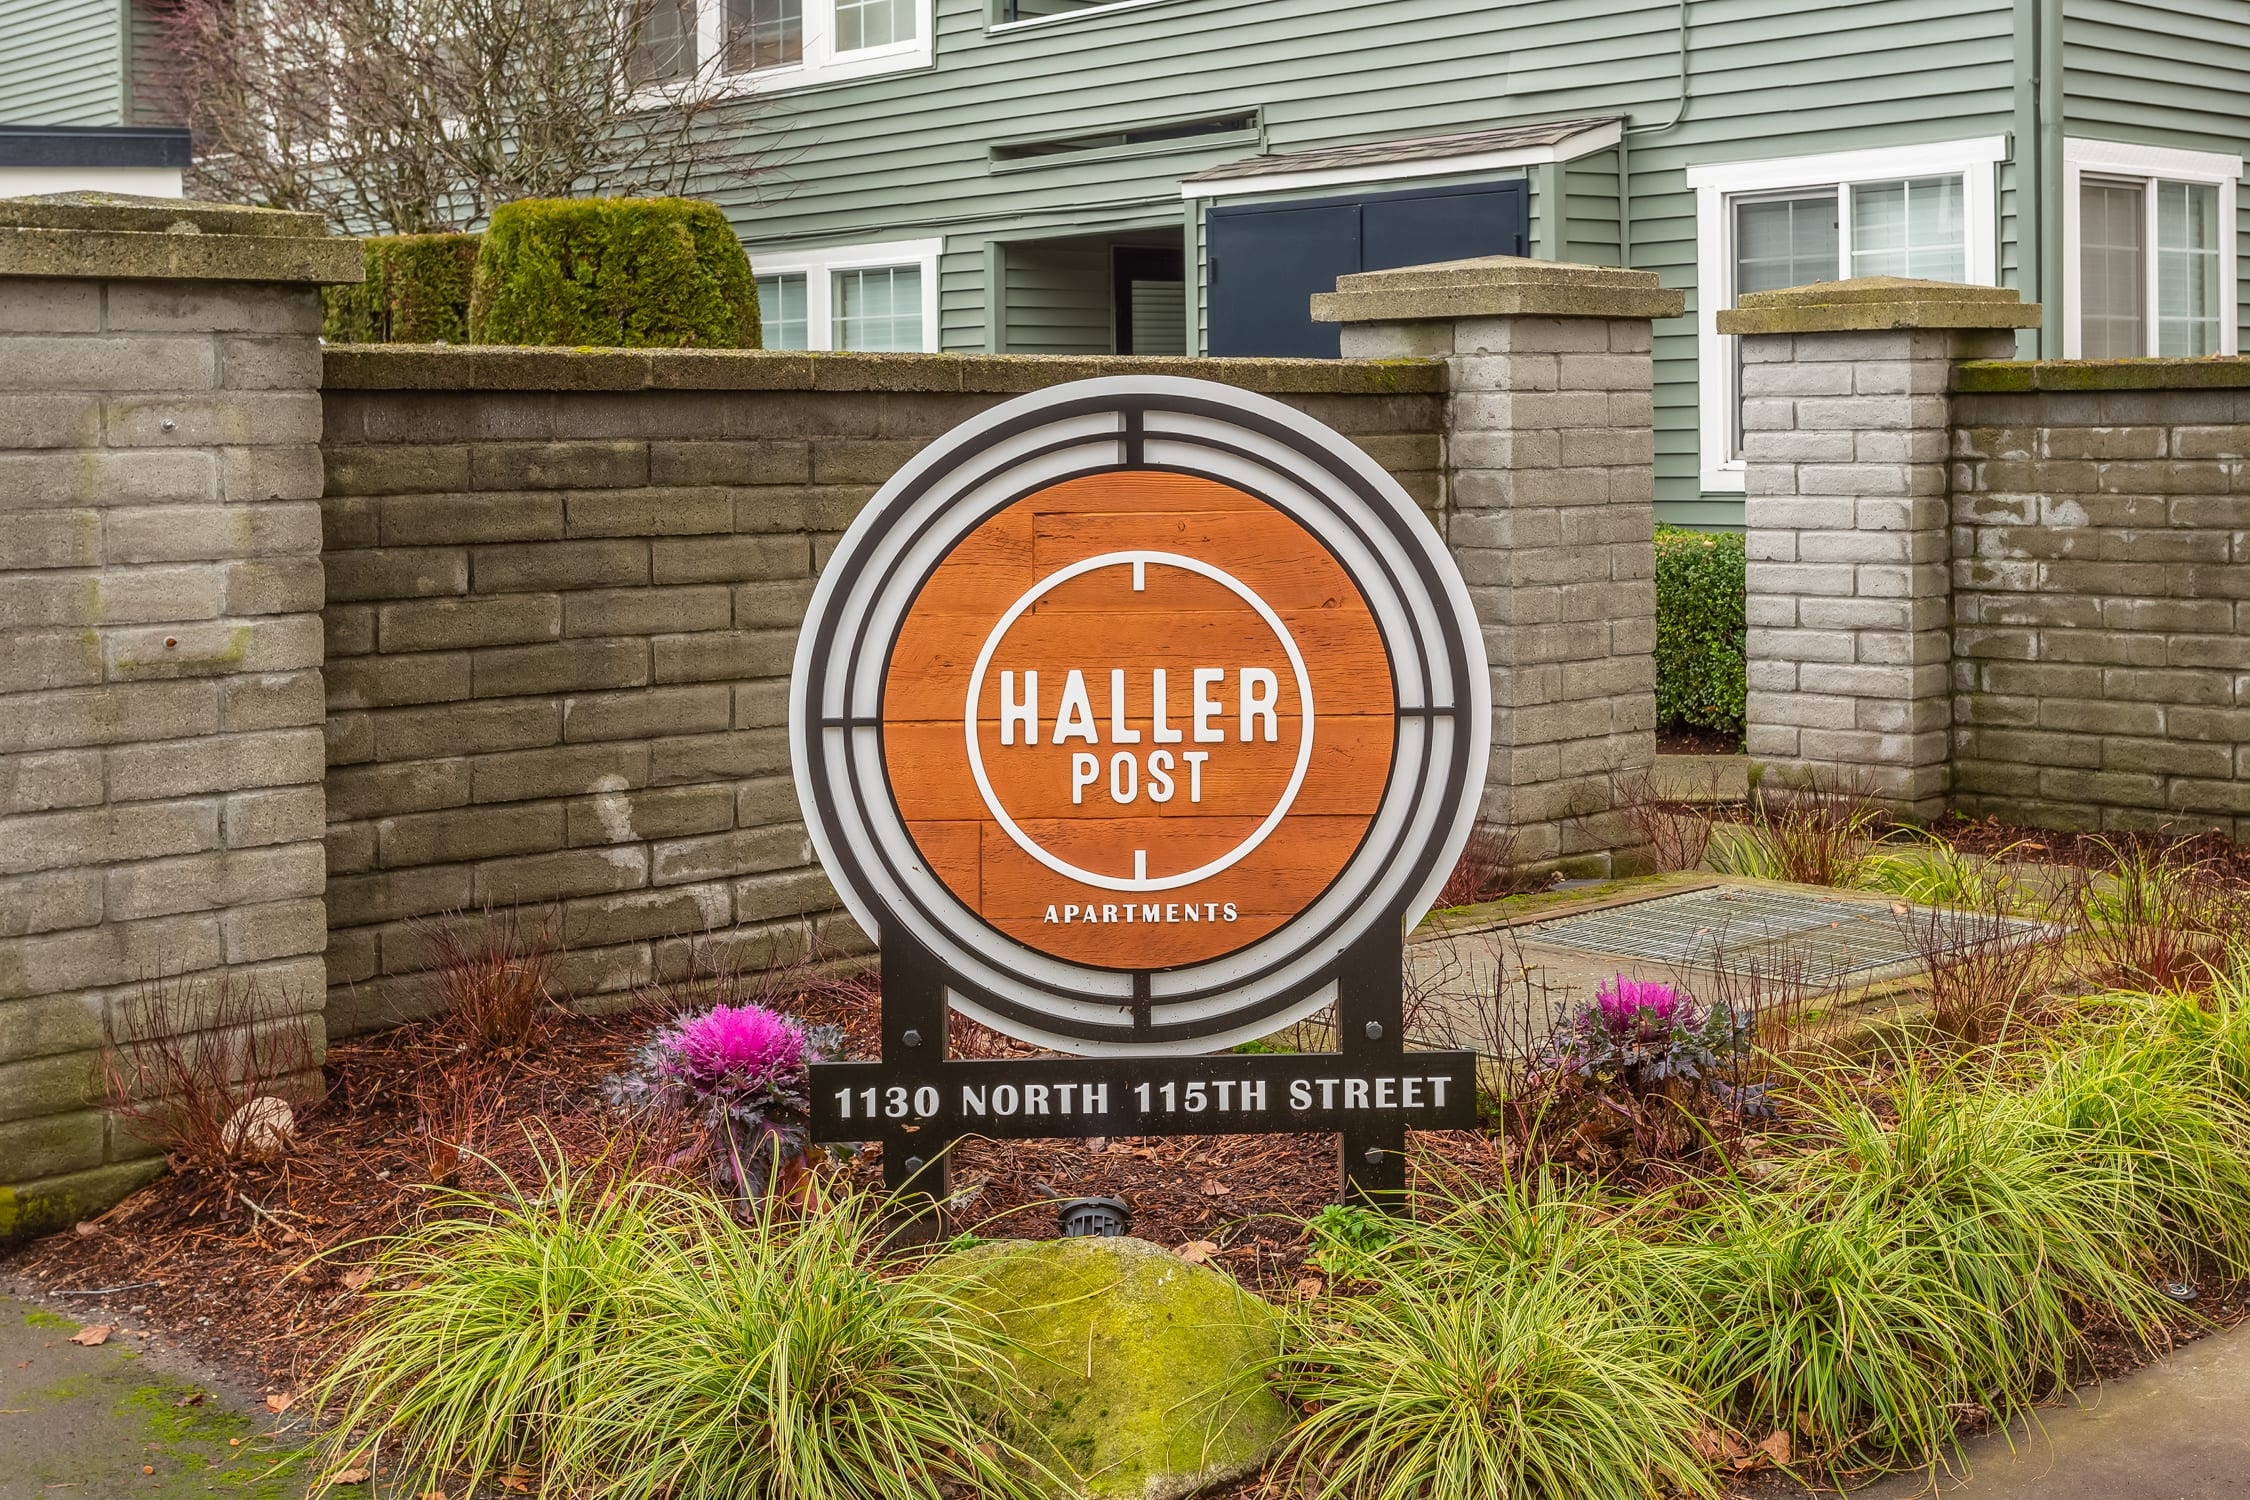 The Haller Post Apartments Address Marker at Haller Post Apartments